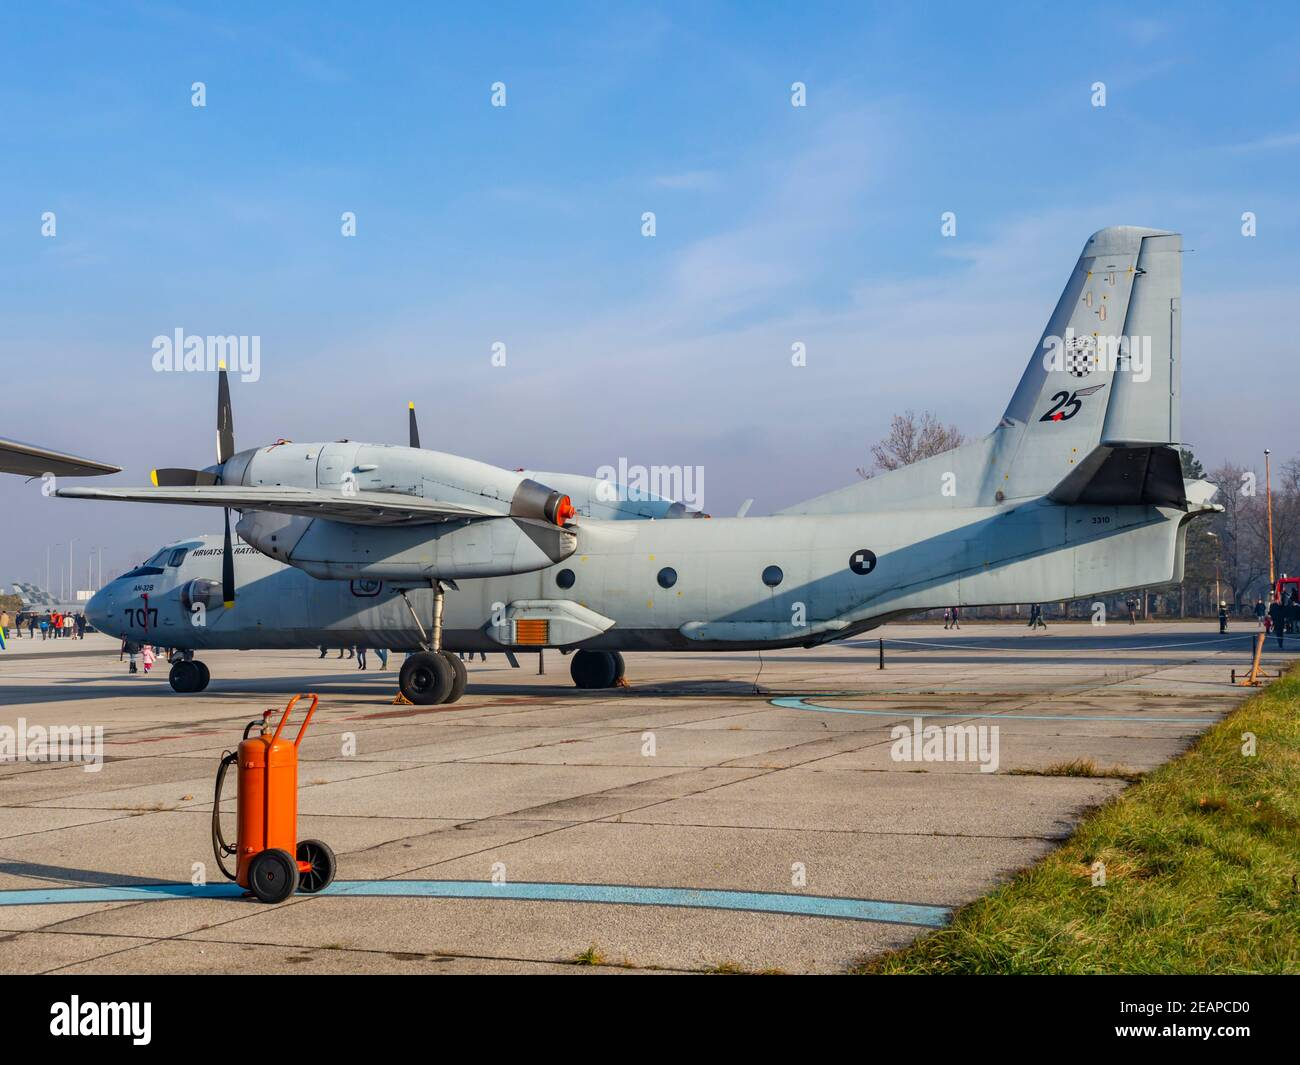 Croatian An-32b aircraft in Pleso Air Base 25 years of HRZ number marking Stock Photo